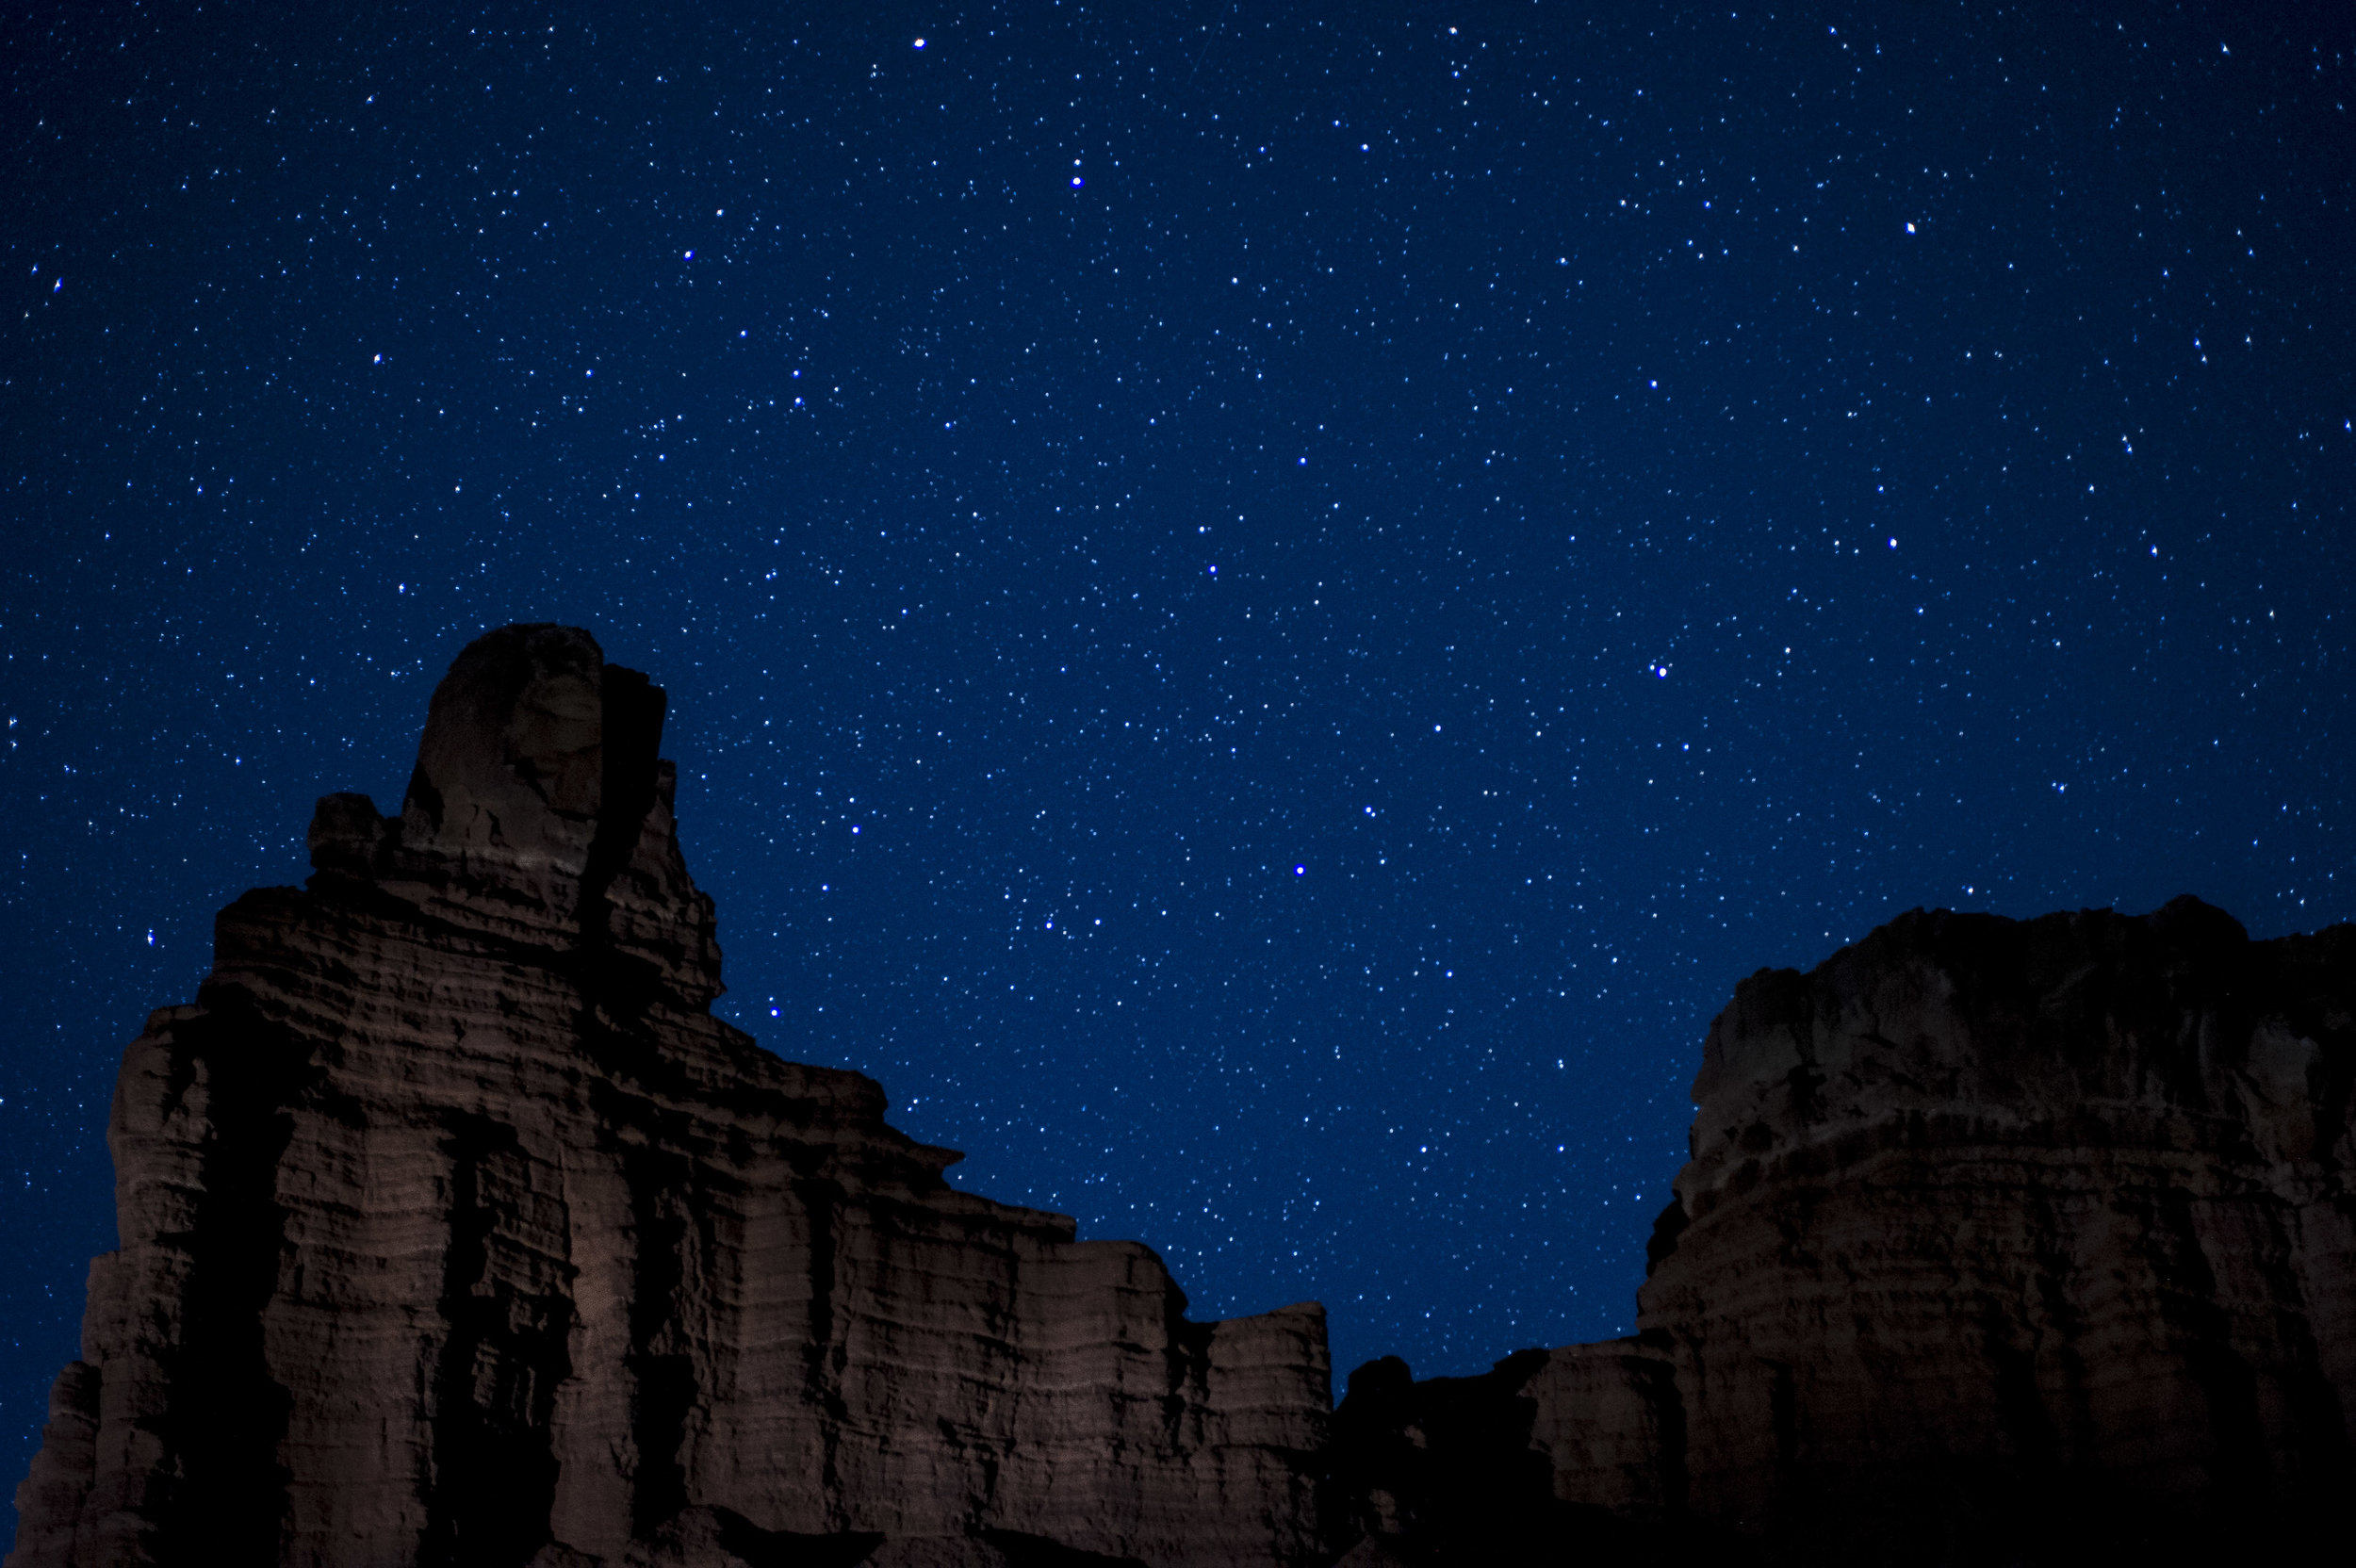 While shooting with Gabe and Matt in  Capitol Reef National Park , we all autofocused on infinity at sunset and taped down our focus rings before photographing Chimney Rock under the stars. Nikon D3s with a  Nikon 28-70mm f/2.8  lens. 15 seconds, f/2.8, ISO 4000.